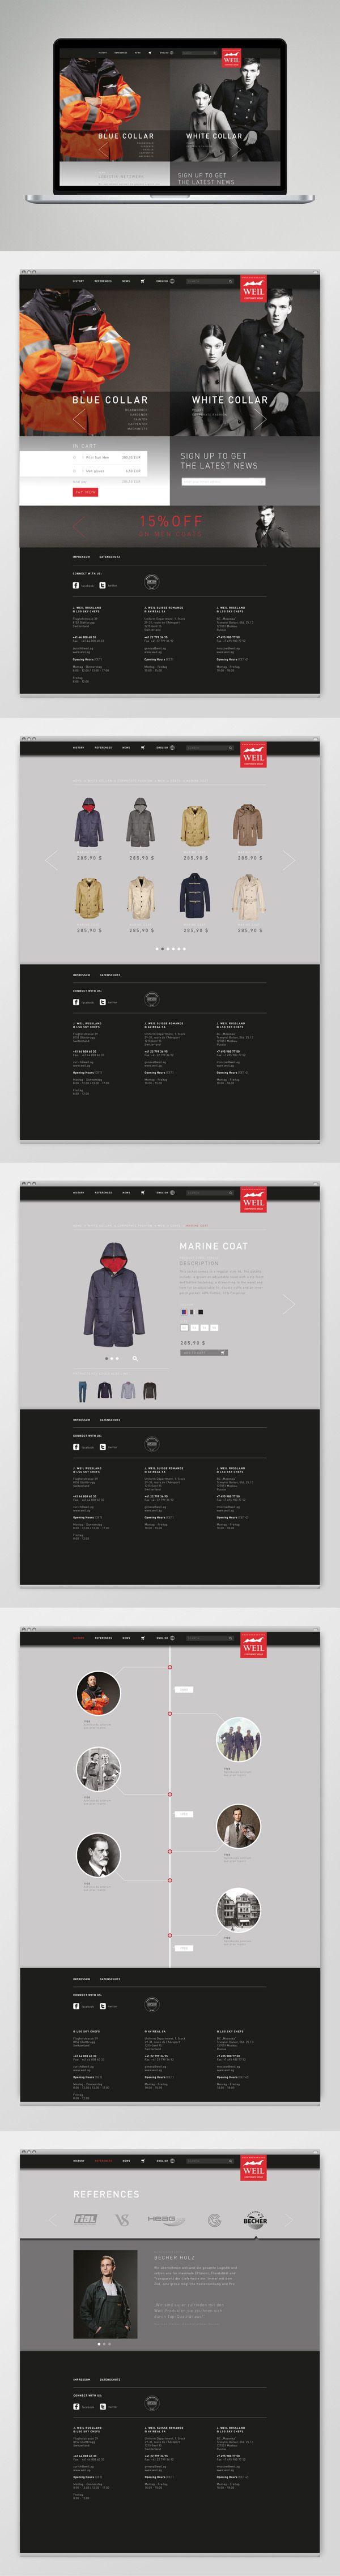 Corporate Wear Website - Preview by Katharina Mauer, via Behance *** Website Layout Preview for a Corporate Wear Manufature.